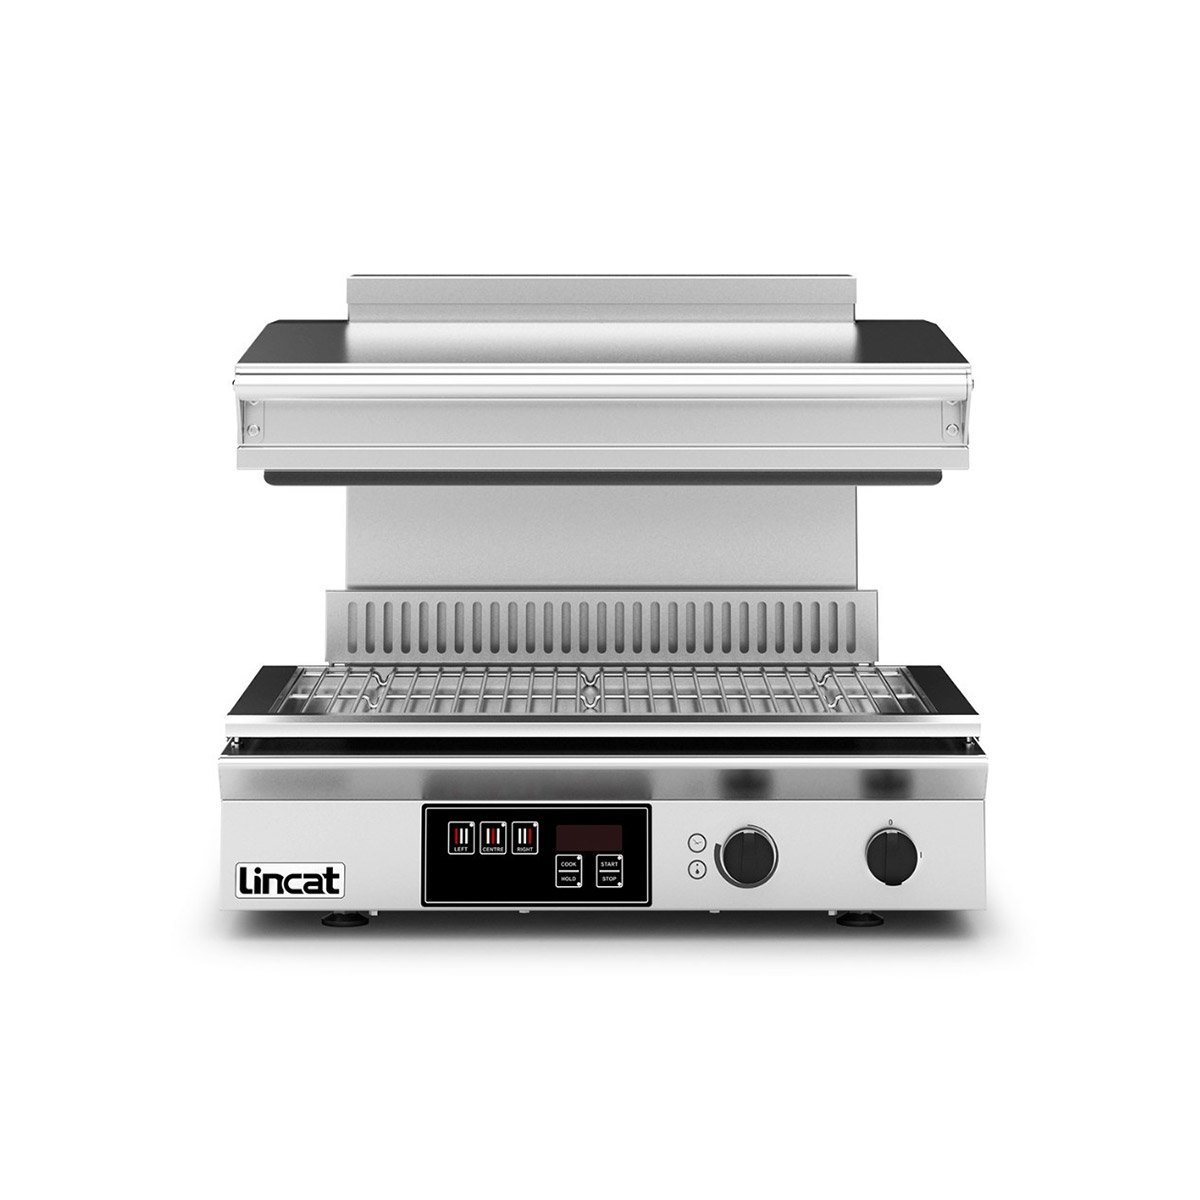 Lincat Opus 800 Electric Cook and Hold Salamander Grill Model: OE8306